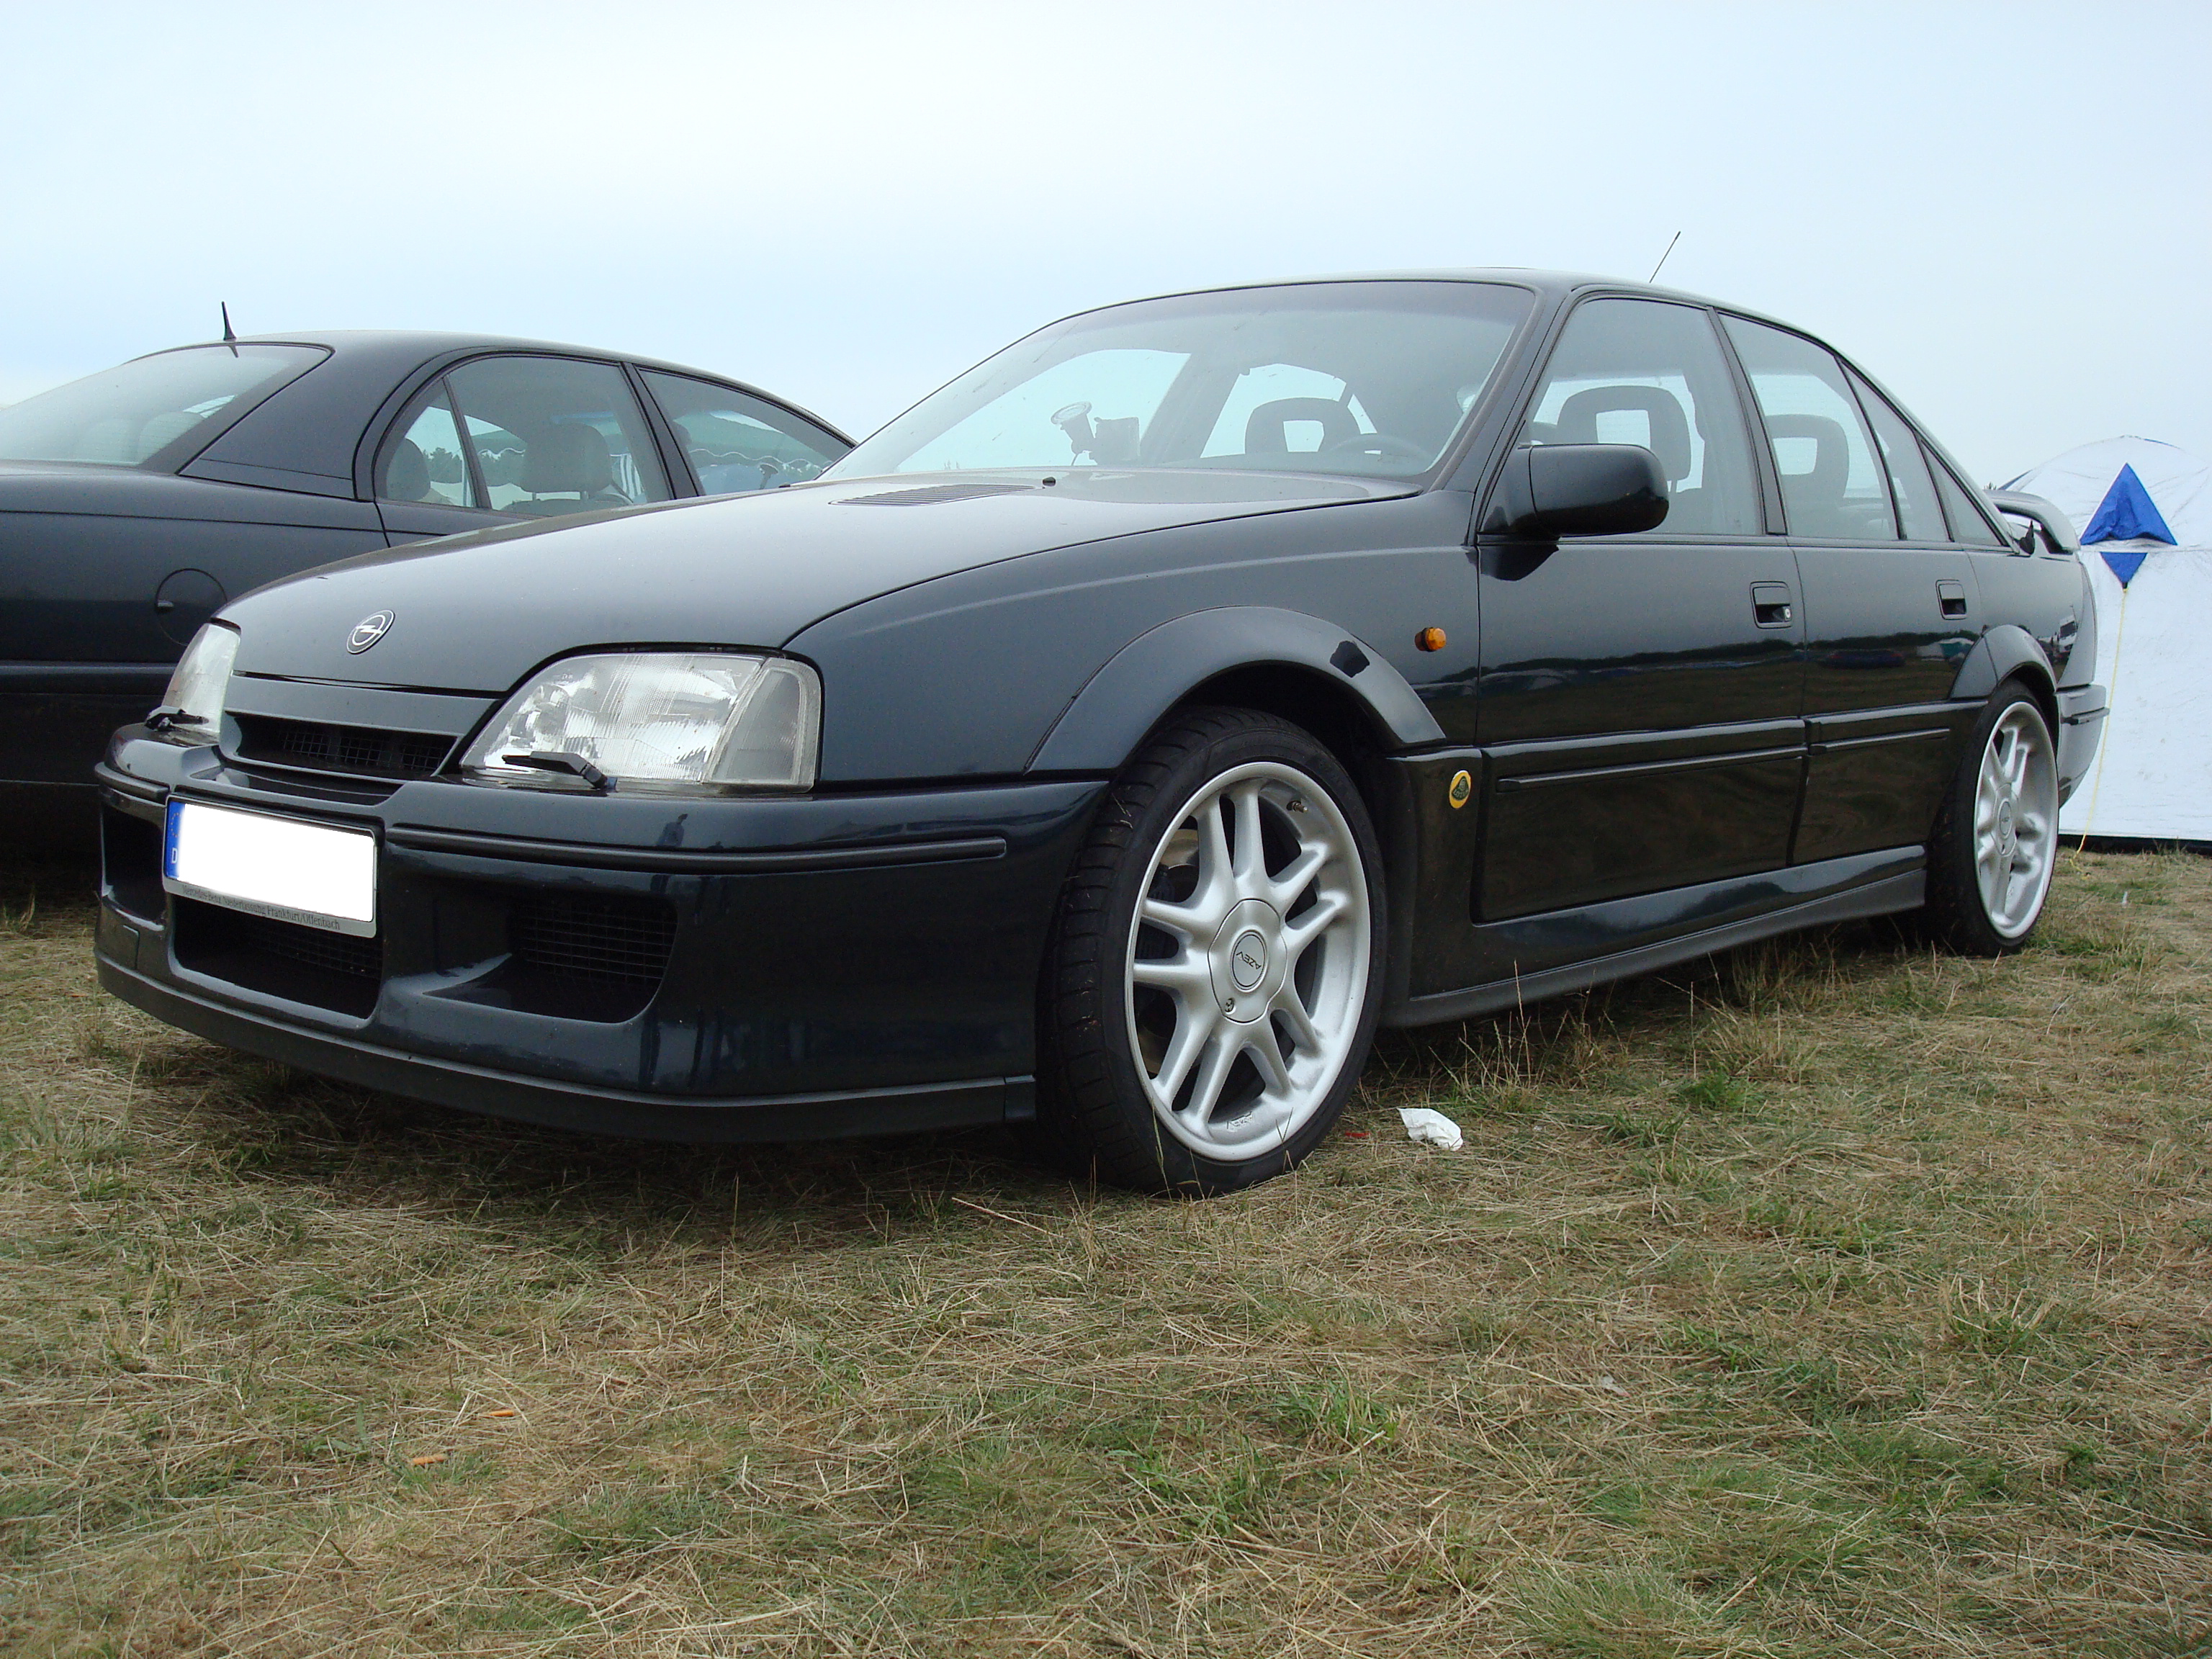 lotus-omega-02 Surprising Lotus Carlton Engine for Sale Cars Trend